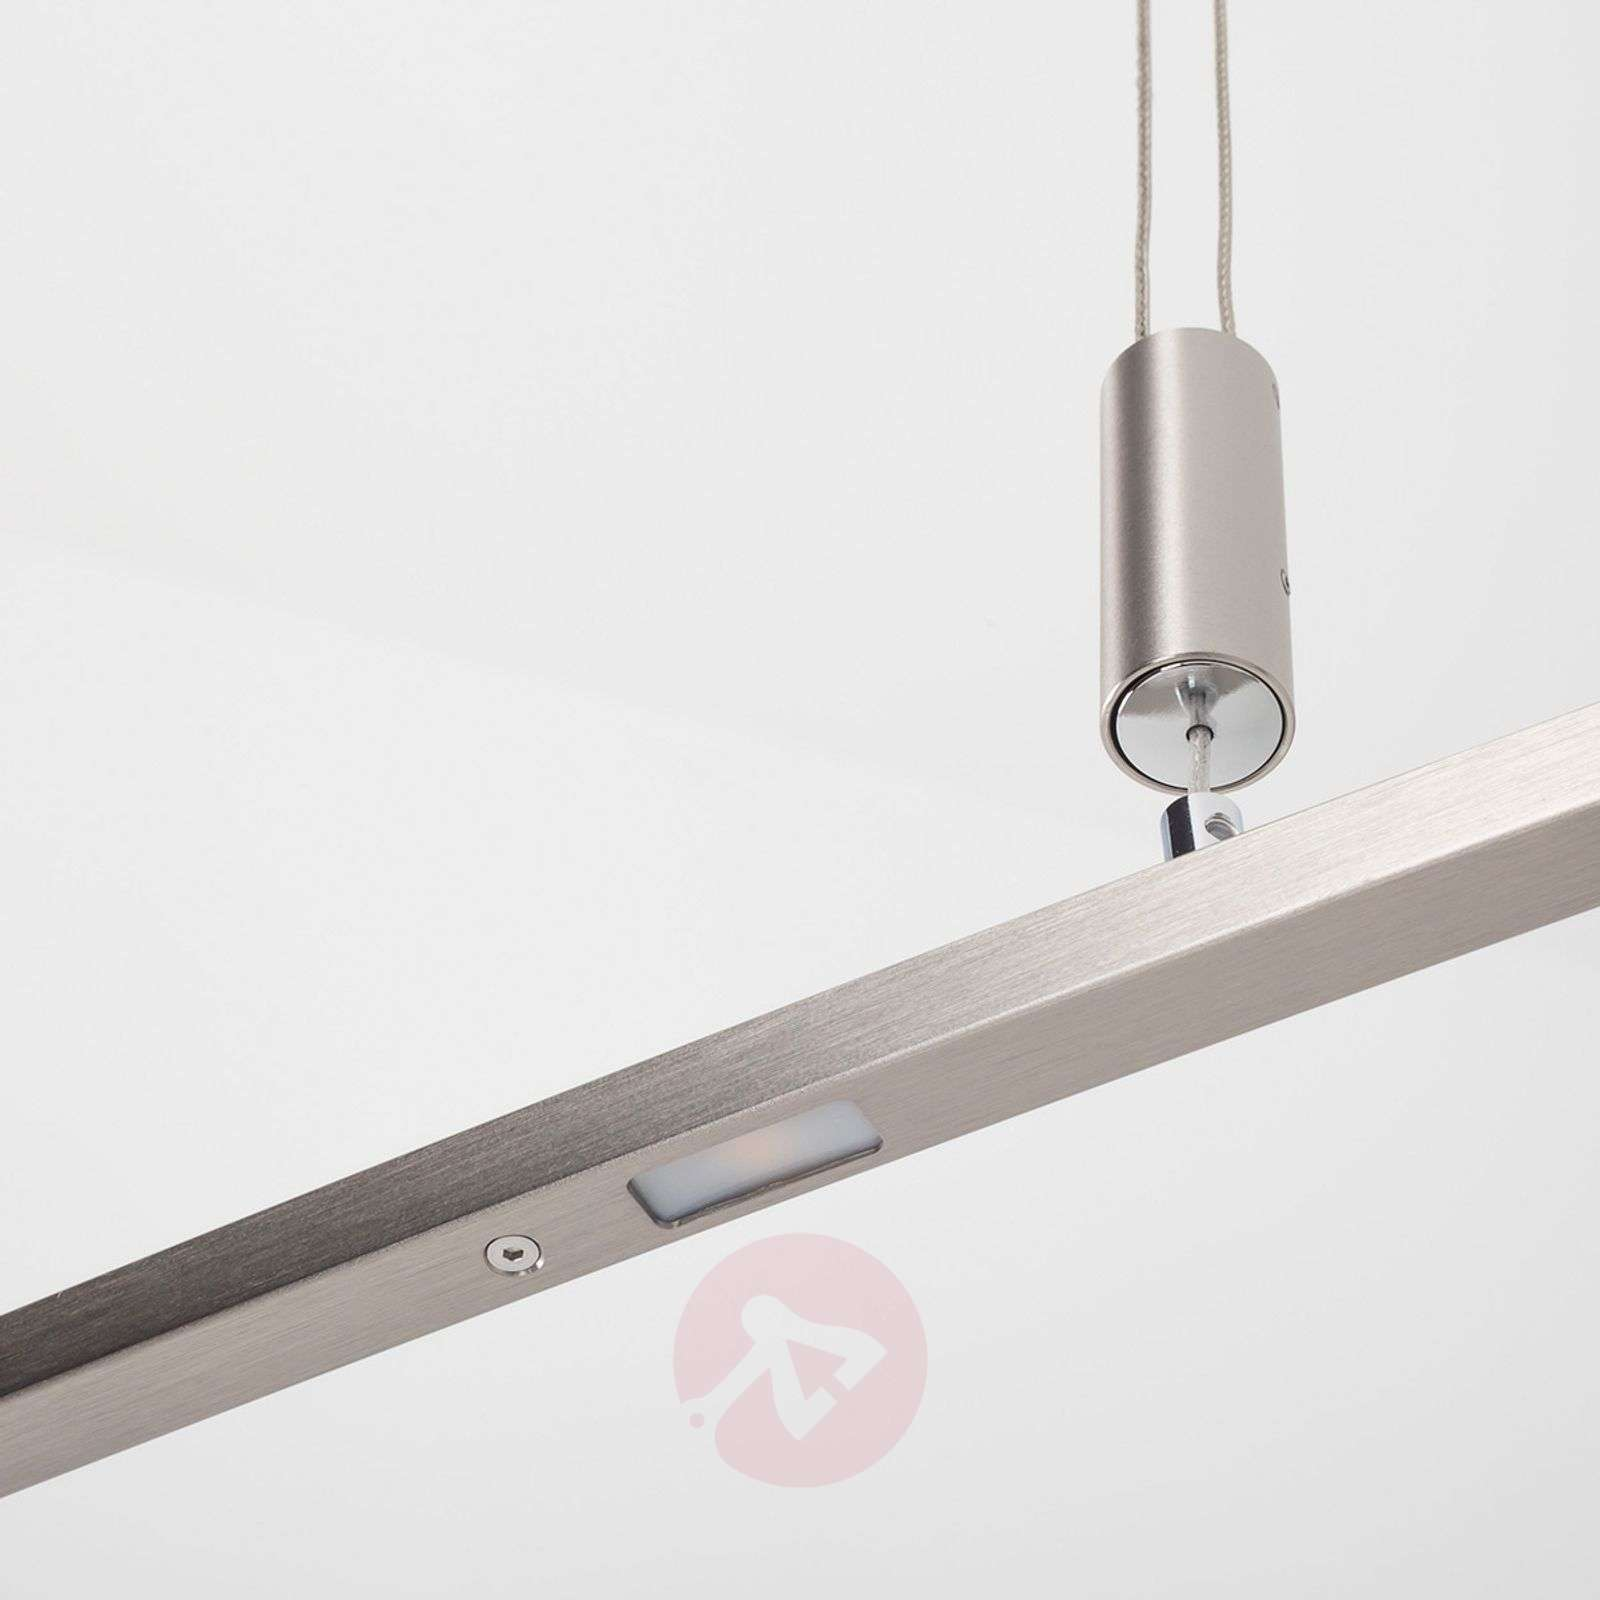 Height Adjustable Led Pendant Light Drop: Falo Curved LED Pendant Lamp, Height-adjustable